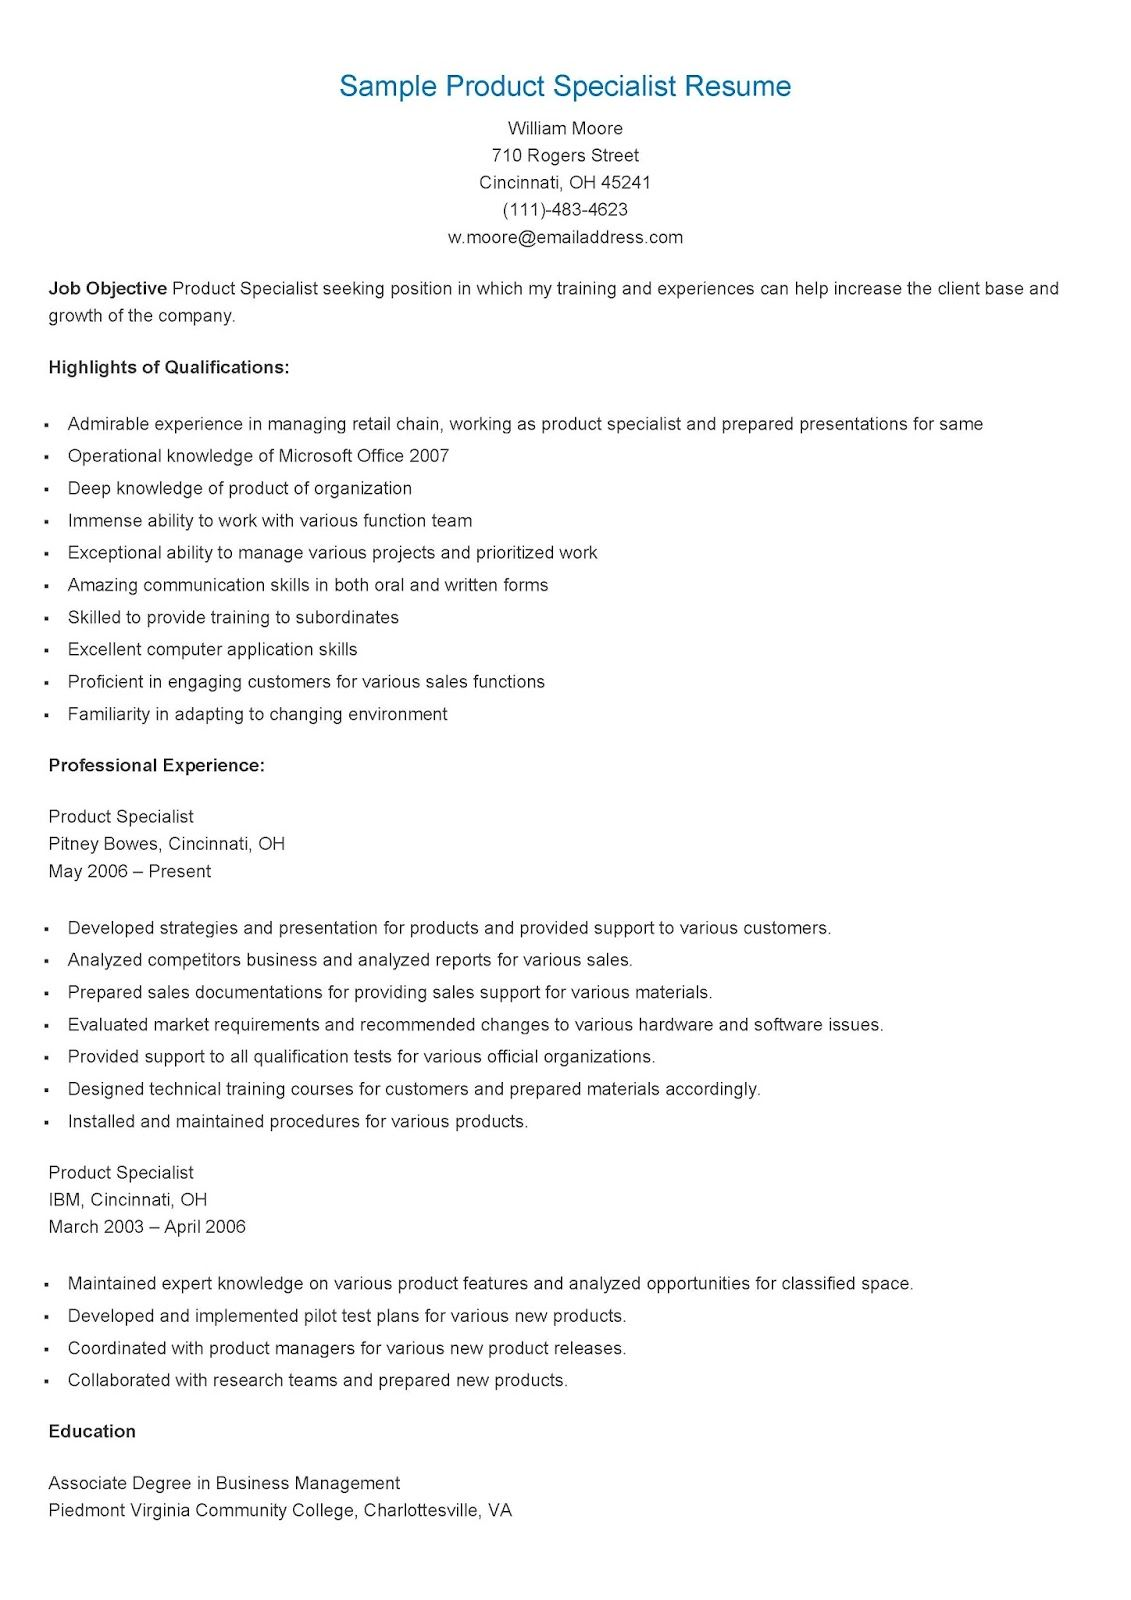 sample product specialist resume quality assurance beginner first job ballet technical Resume Product Specialist Resume Sample